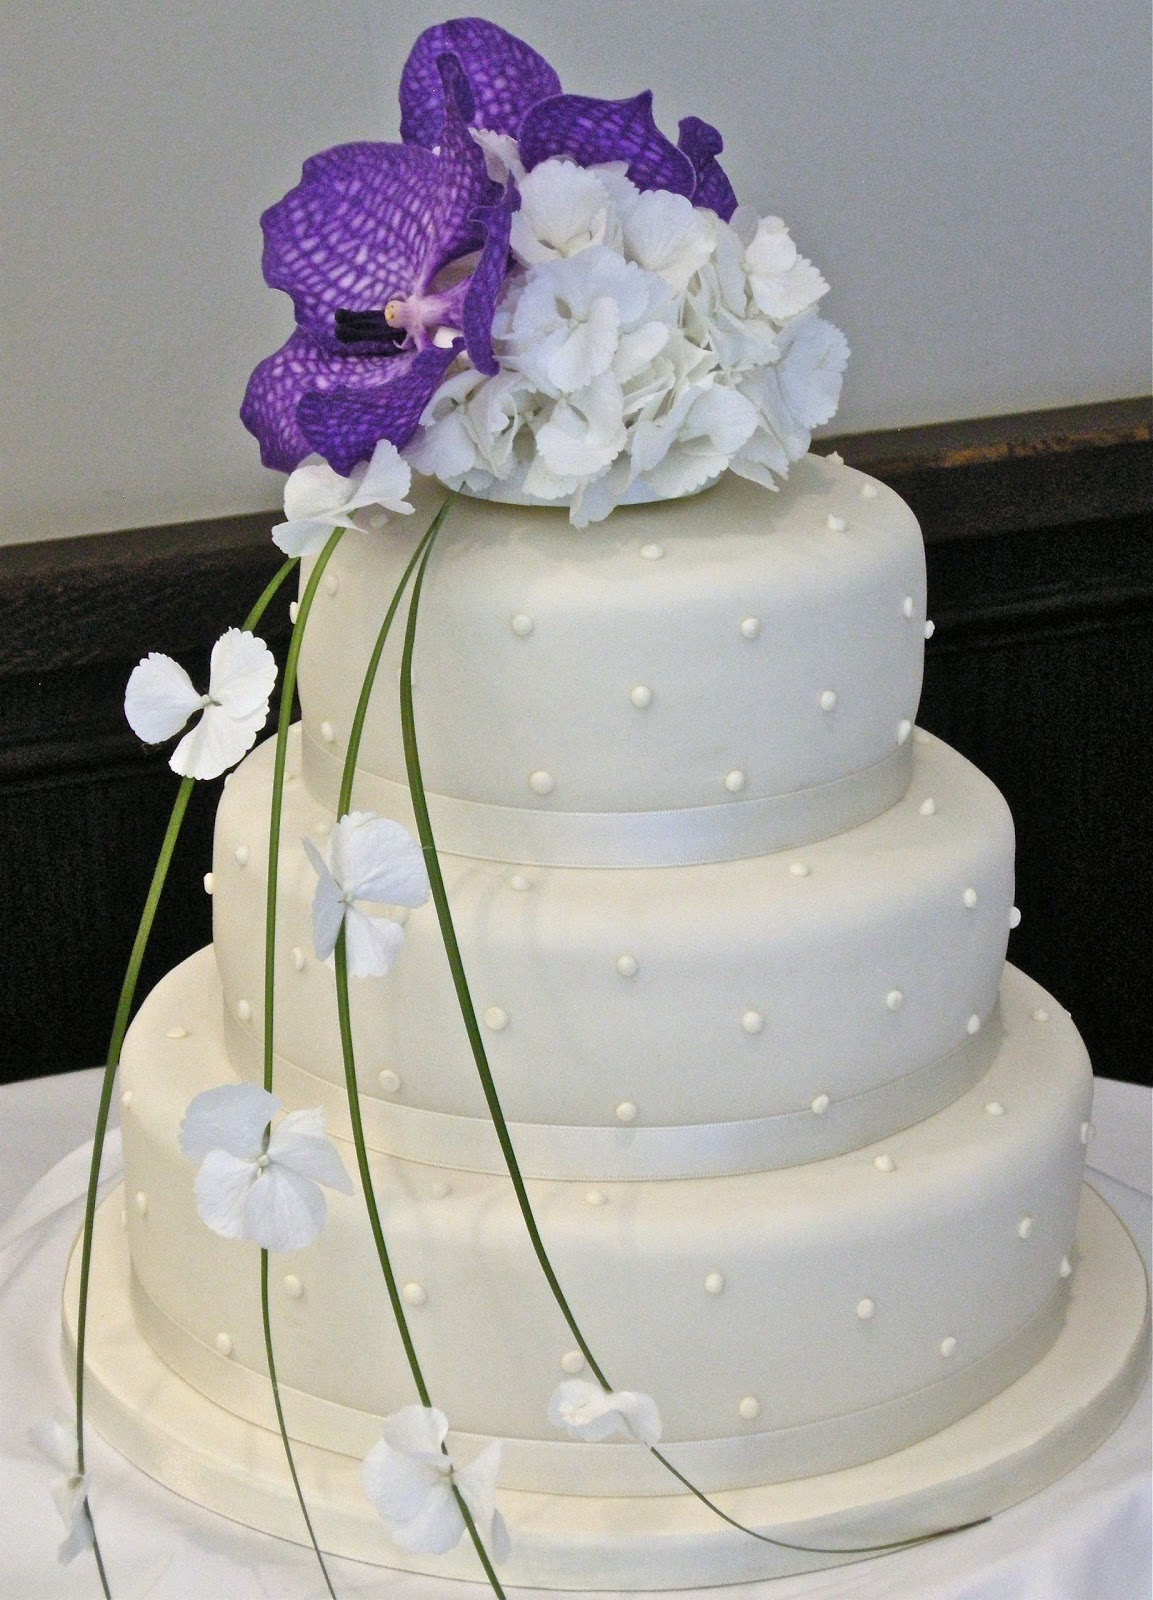 Letha\'s blog: 3 Tier Wedding cakes-Purple n